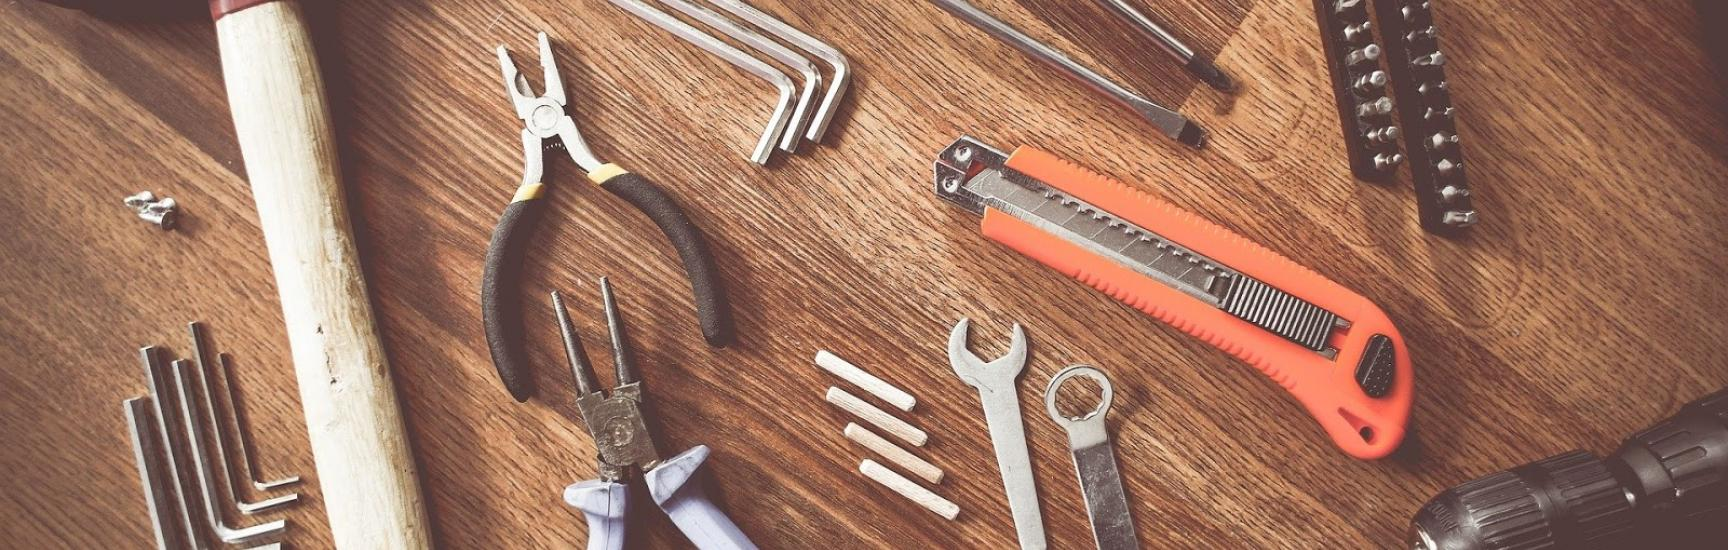 repair and building construction tools